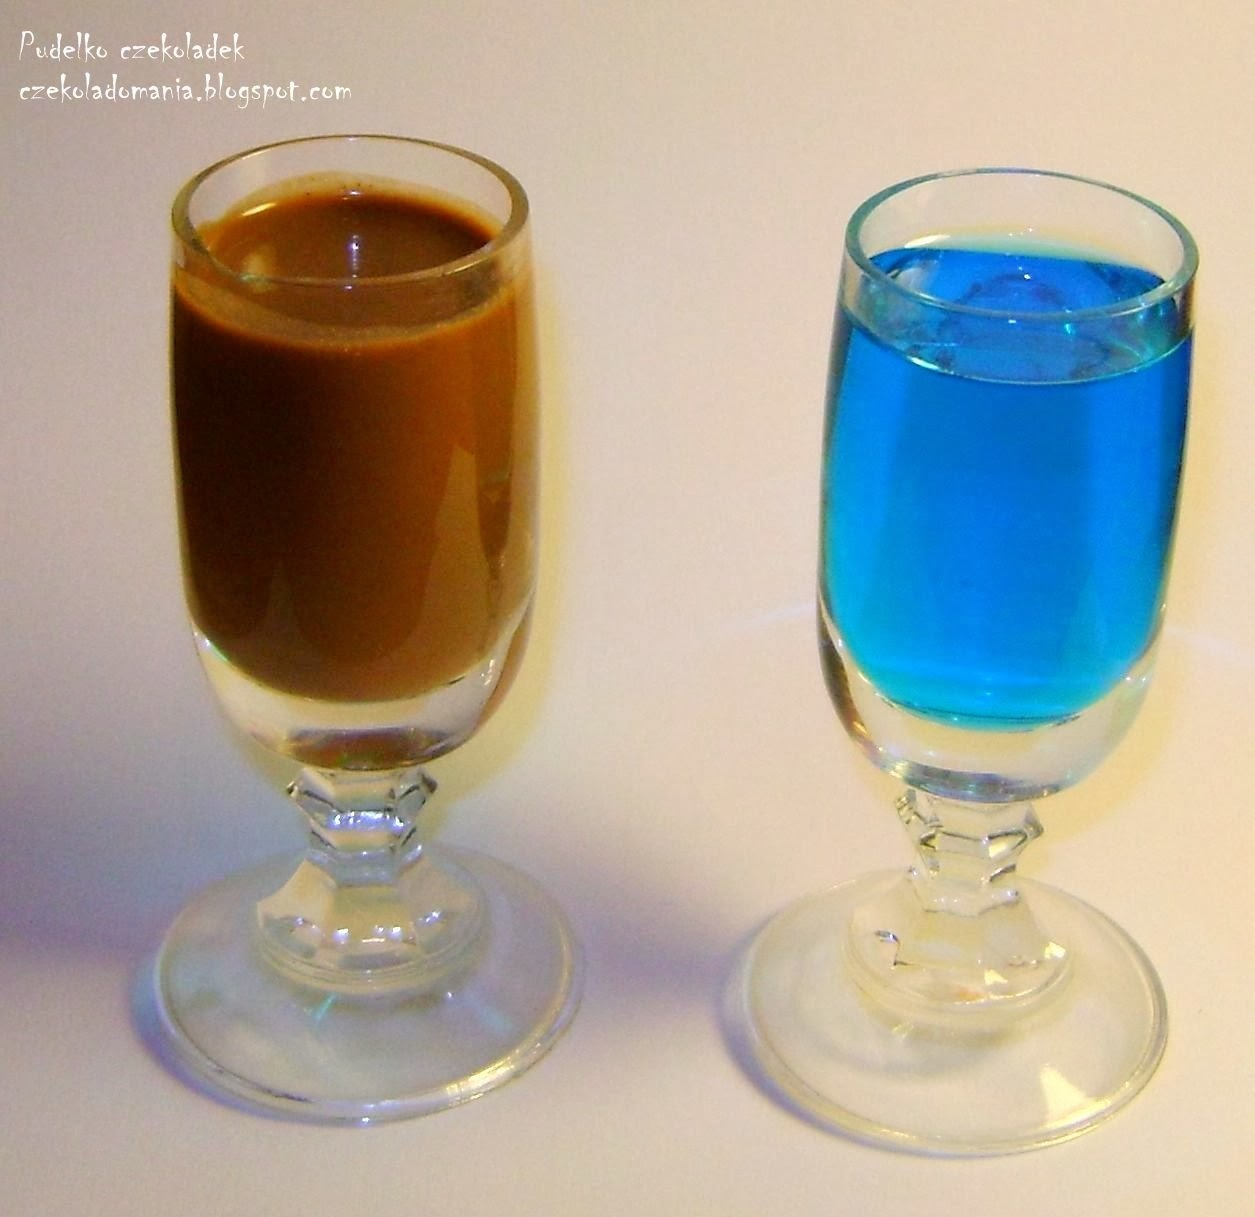 Czekoladowy likier i nalewka ice:) / chocolate and ice liqueur